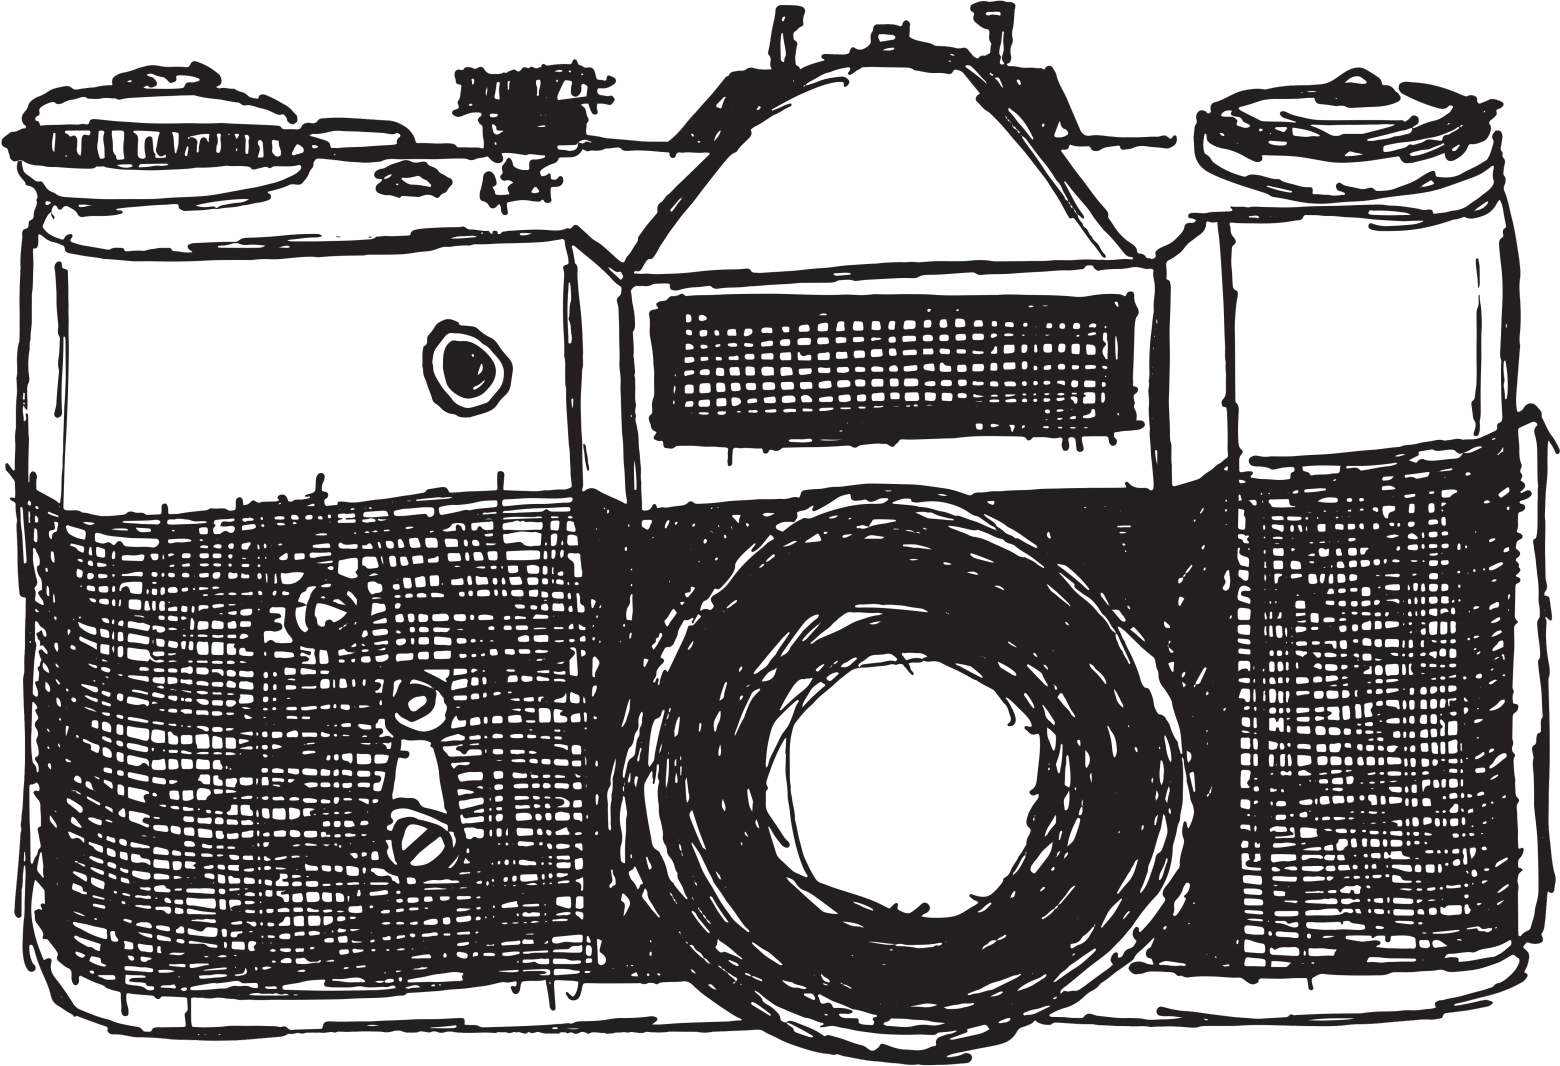 Palimpsest drawing. Collection of camera